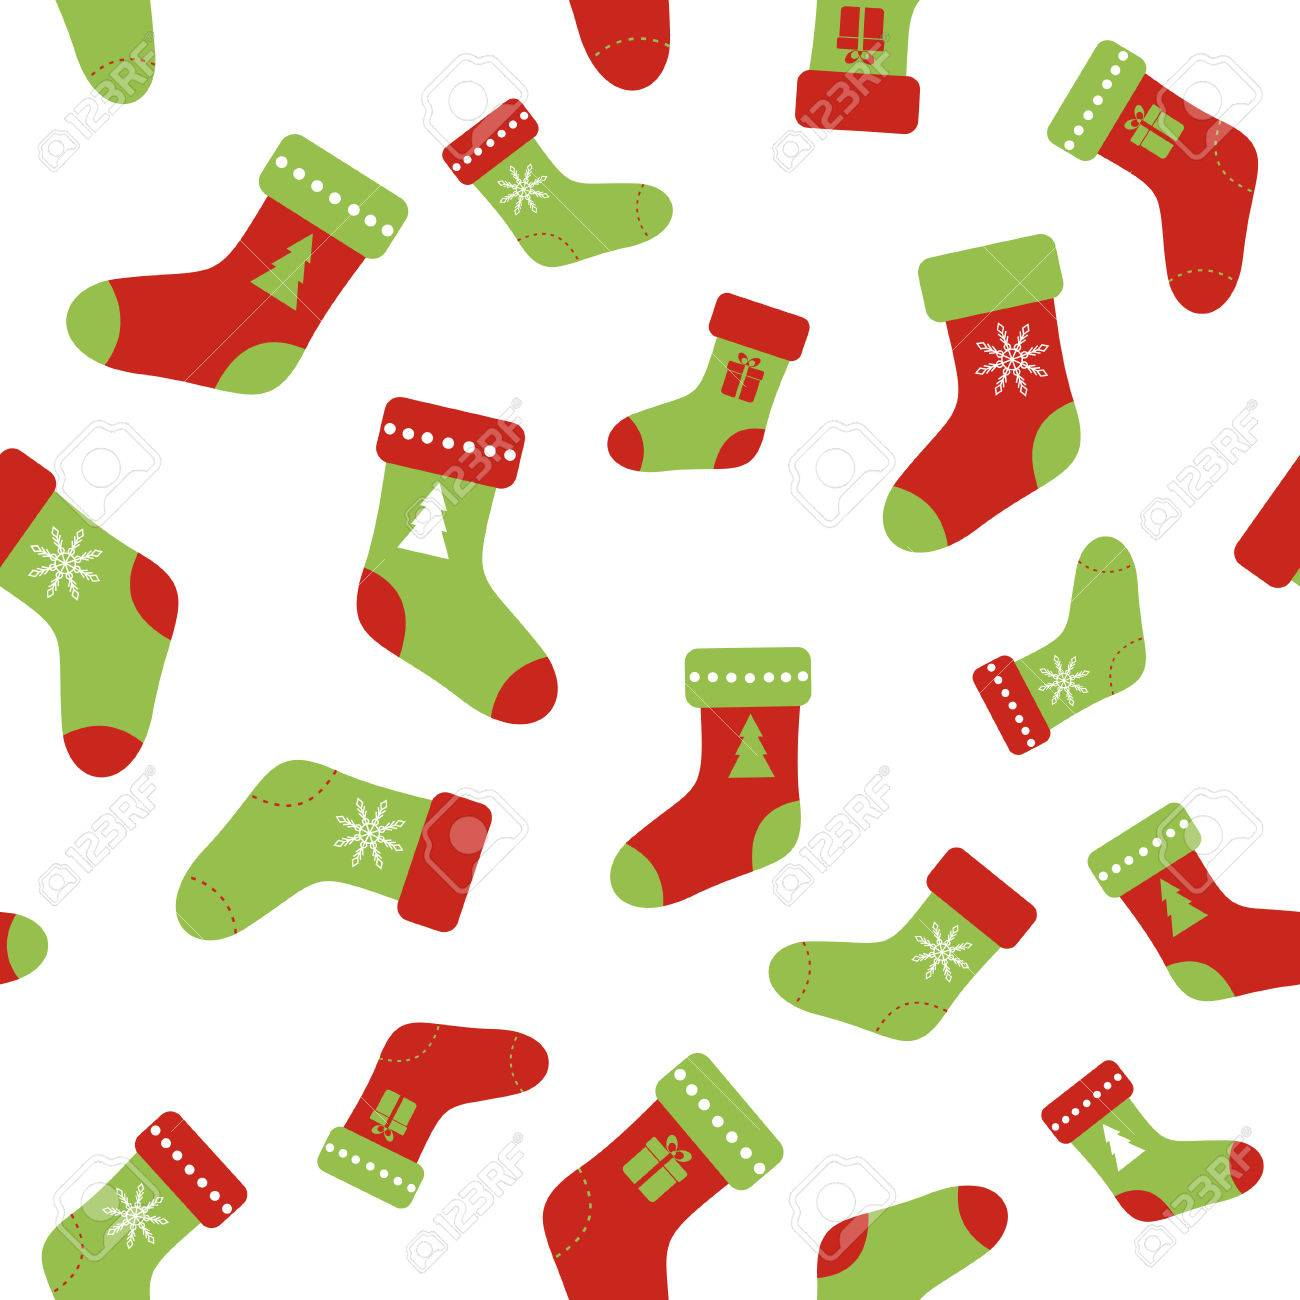 Seamless pattern with christmas socks background for wrapping paper seamless pattern with christmas socks background for wrapping paper fabric print greeting cards m4hsunfo